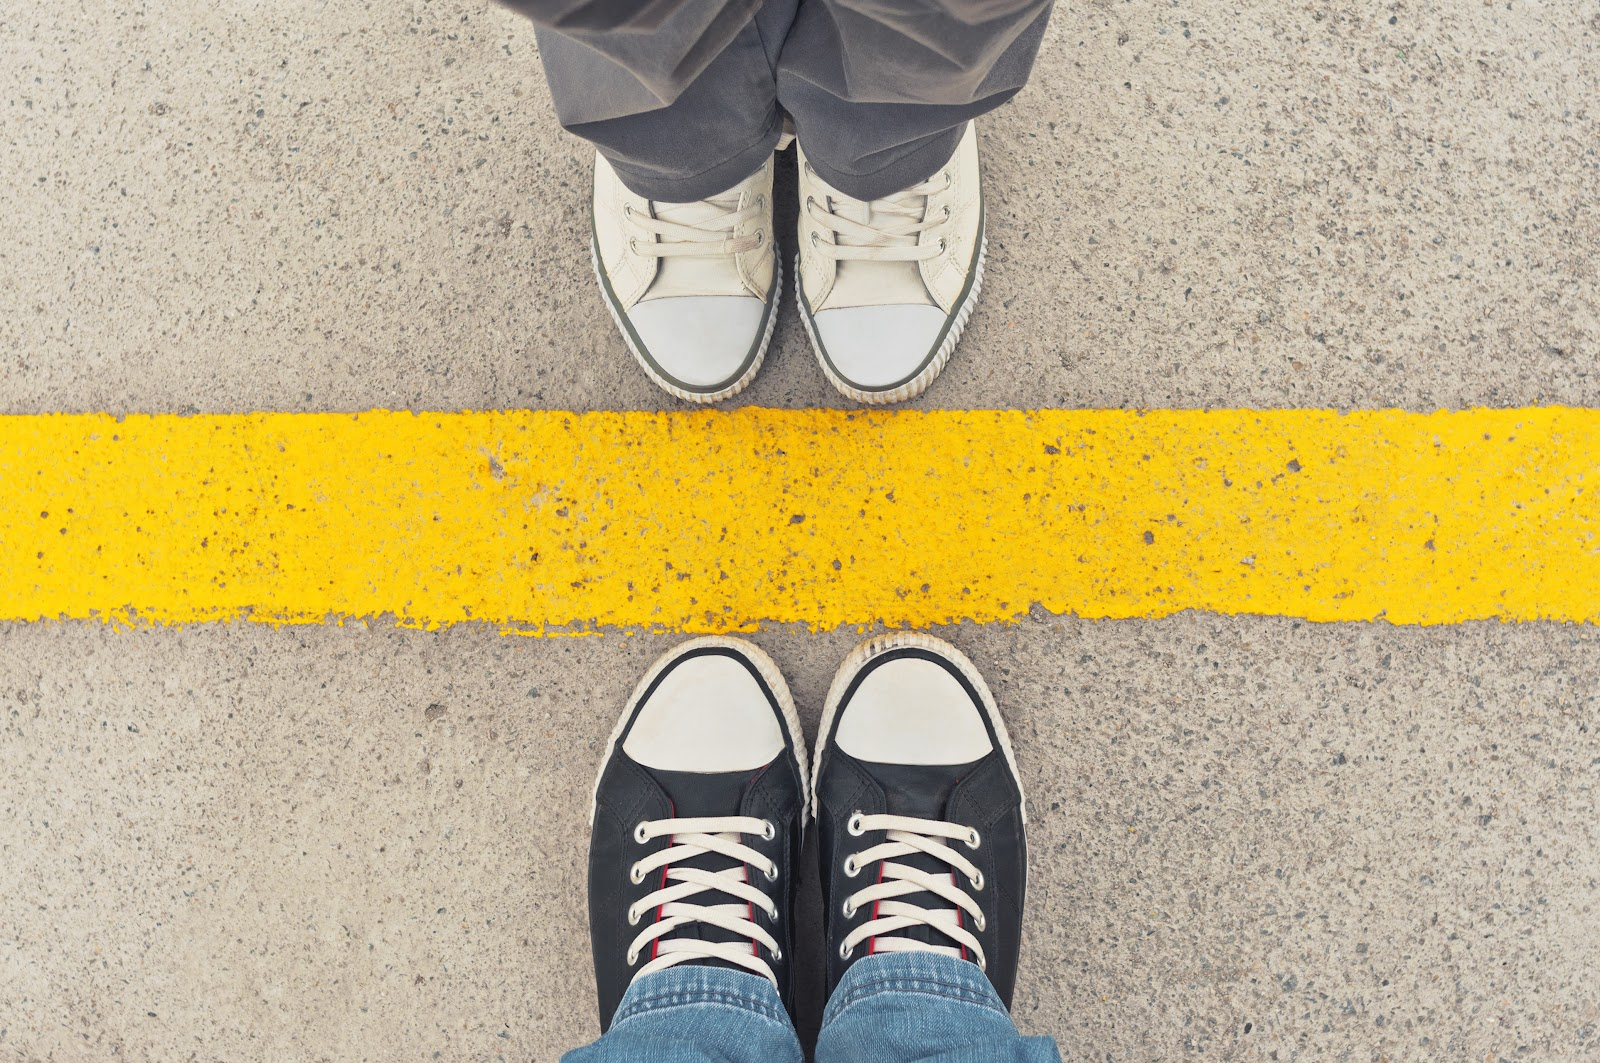 A view of looking down at shoes with another person coming up to a boundary